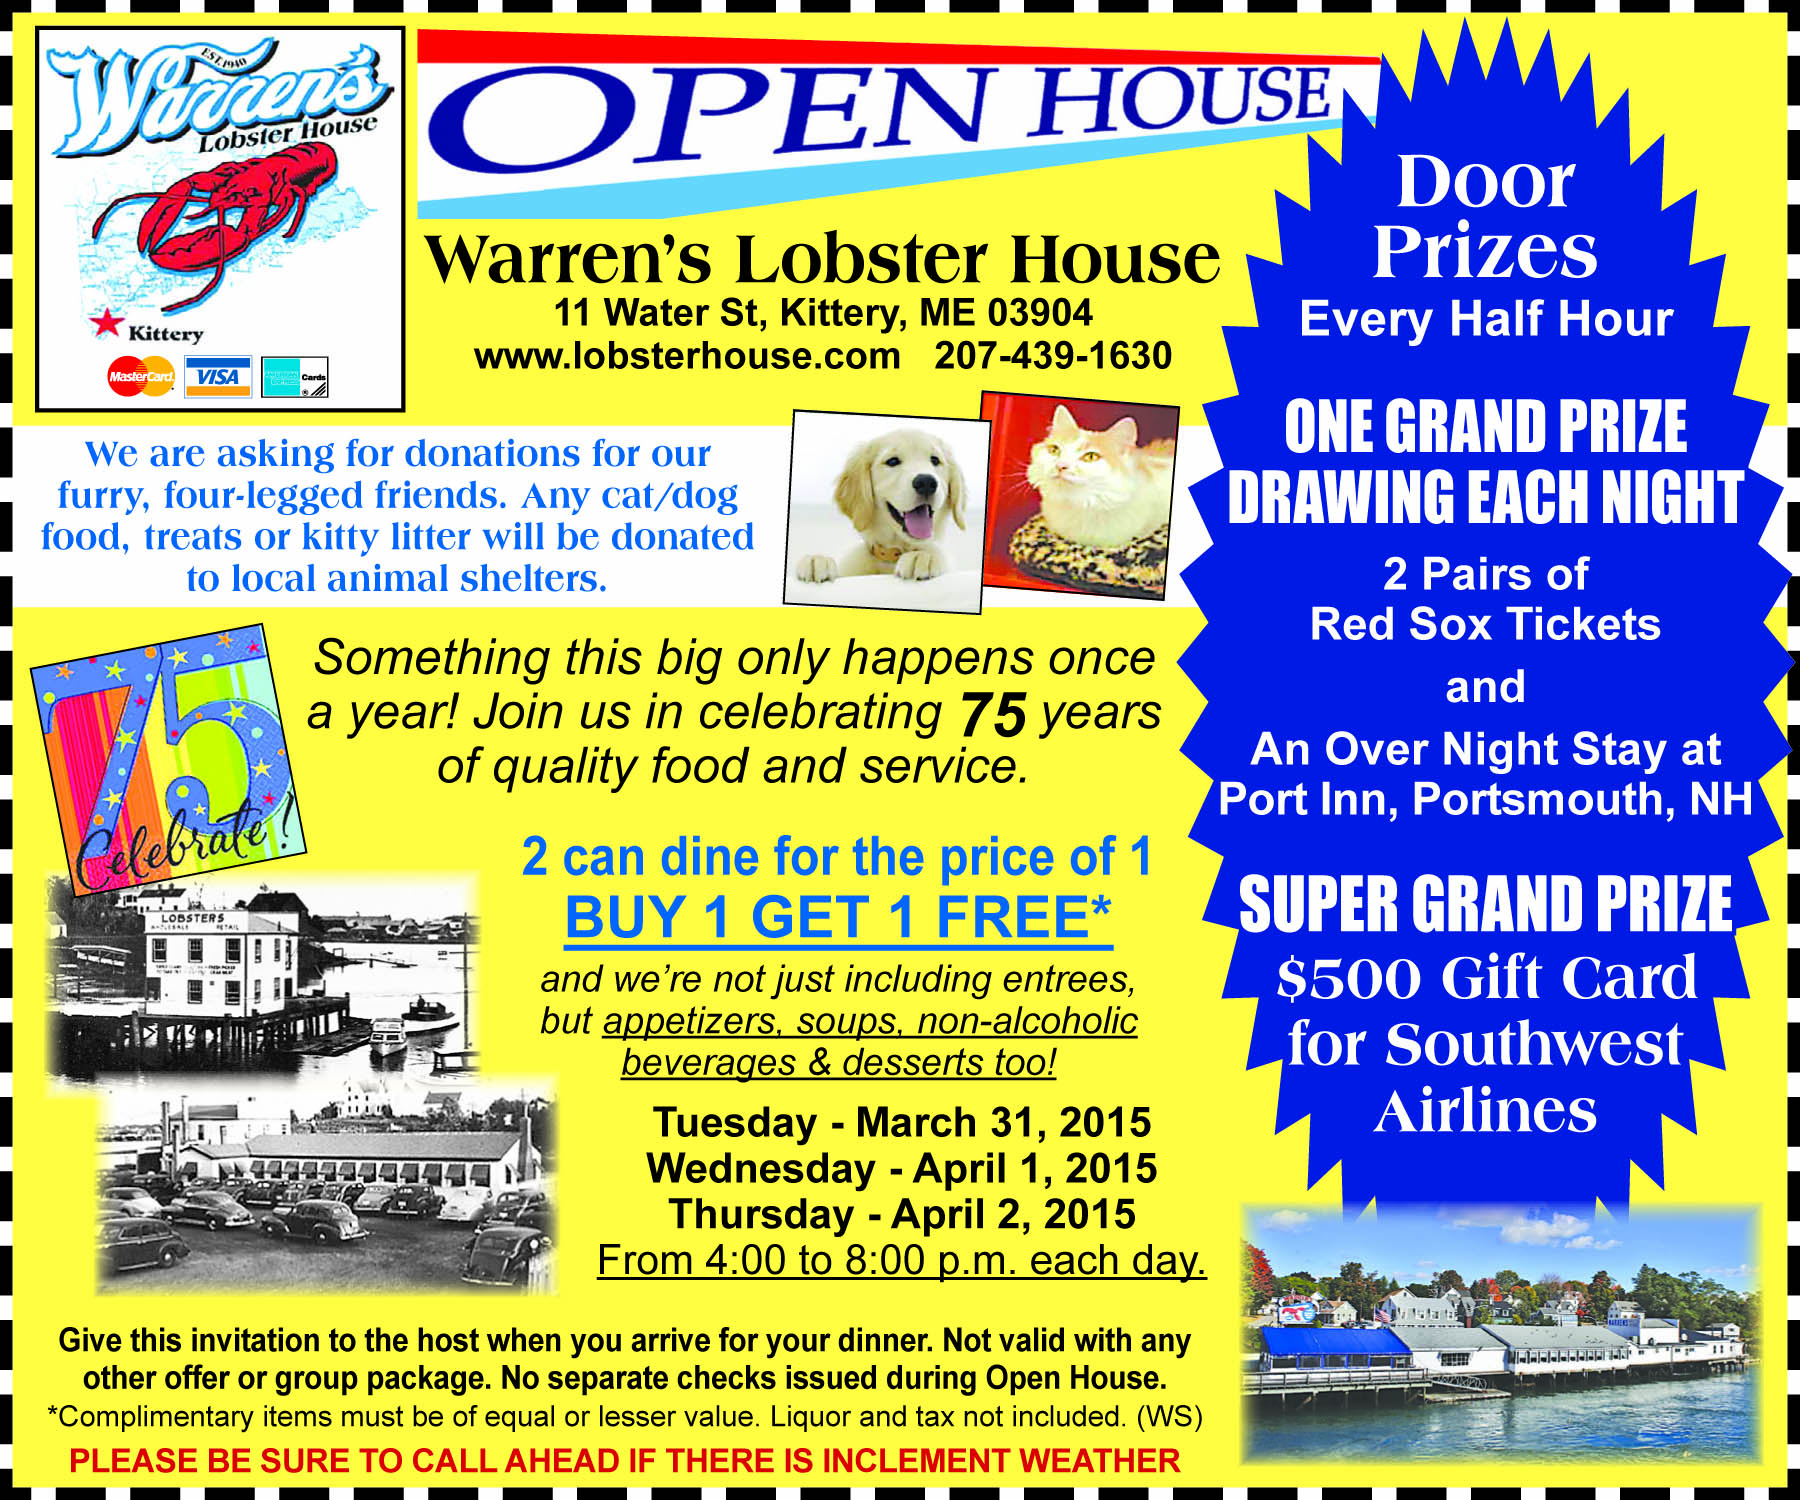 Warren Lobster House Kittery Me Coupons | Lobster House